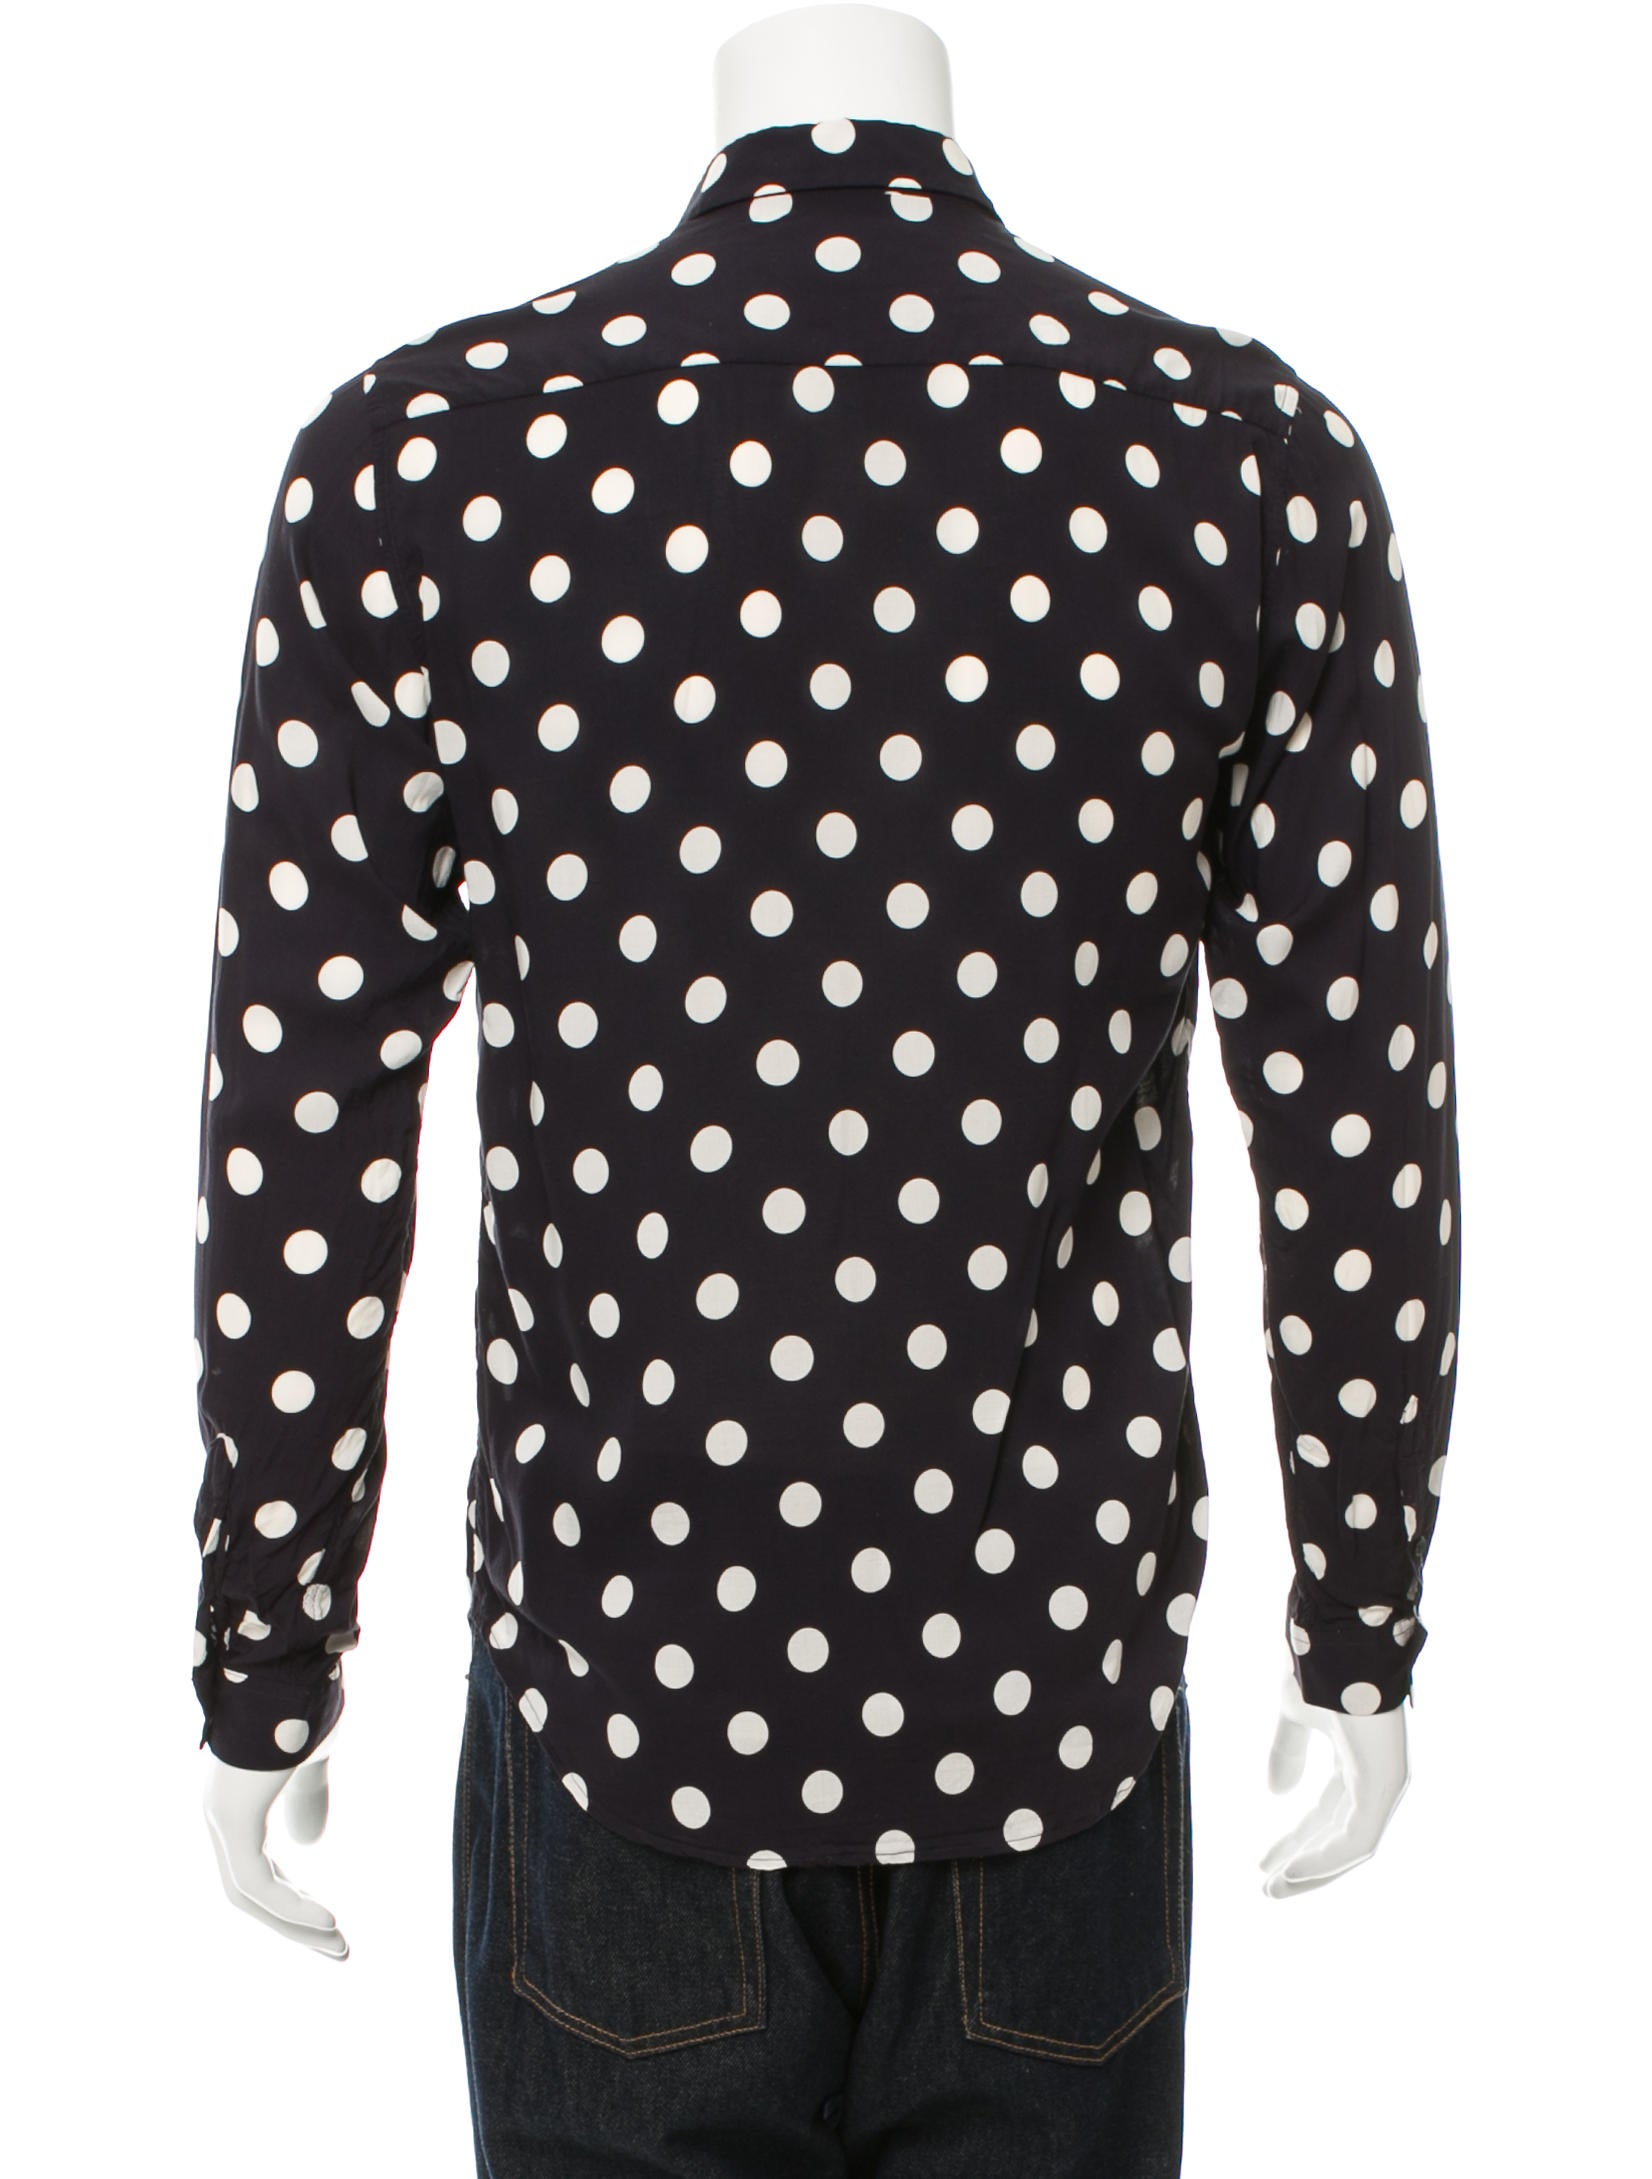 Sandro Woven Polka Dot Print Shirt - Clothing